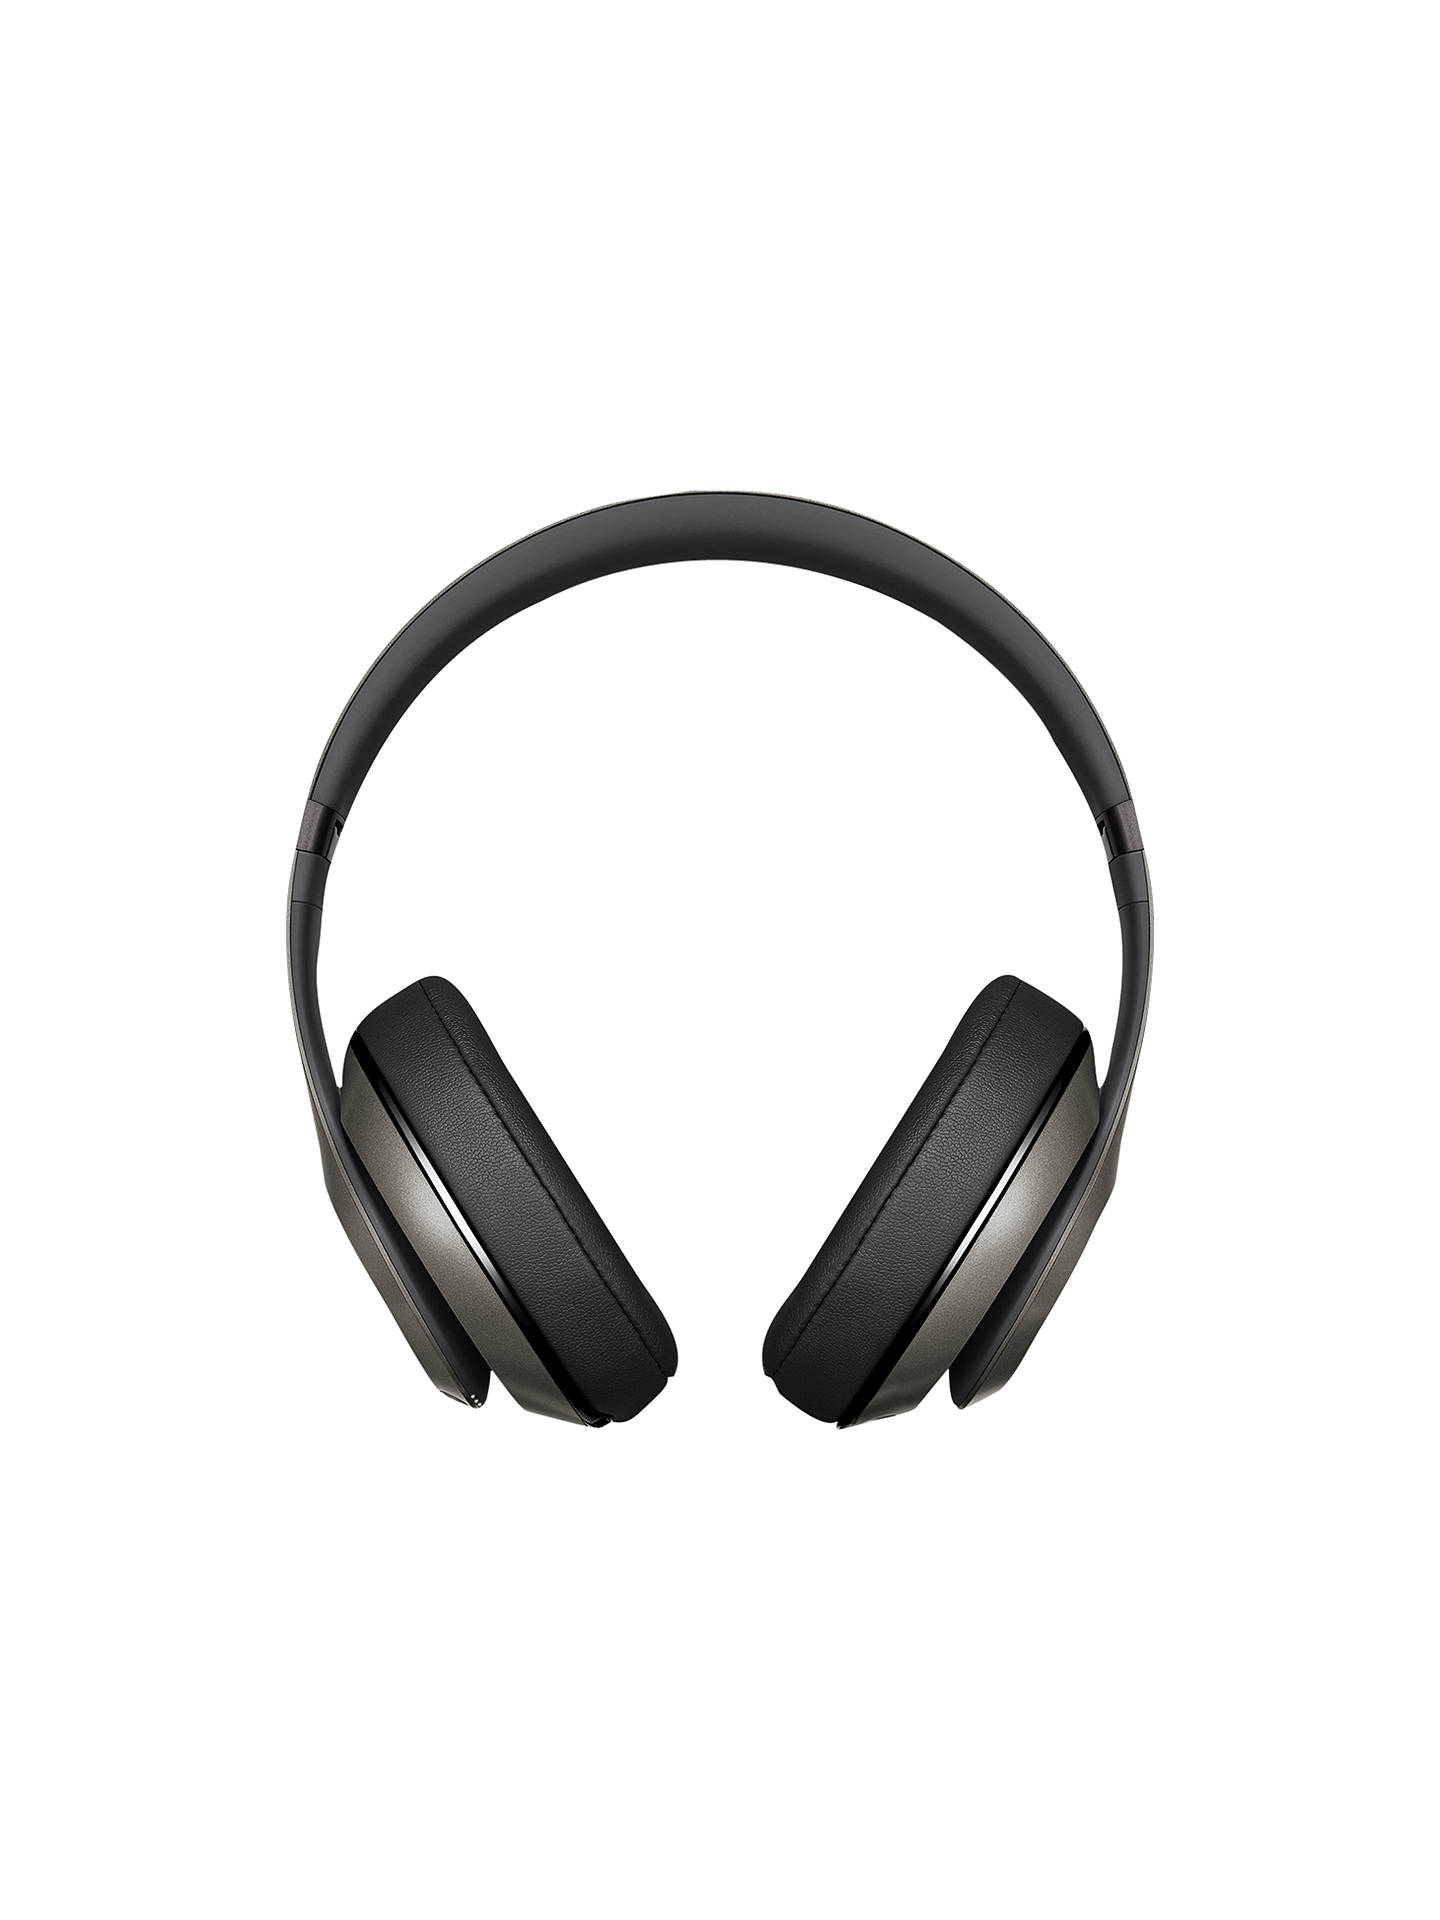 Buy Beats Studio Wireless Noise Cancelling Bluetooth Over-Ear Headphones with Mic/Remote, Steel Online at johnlewis.com